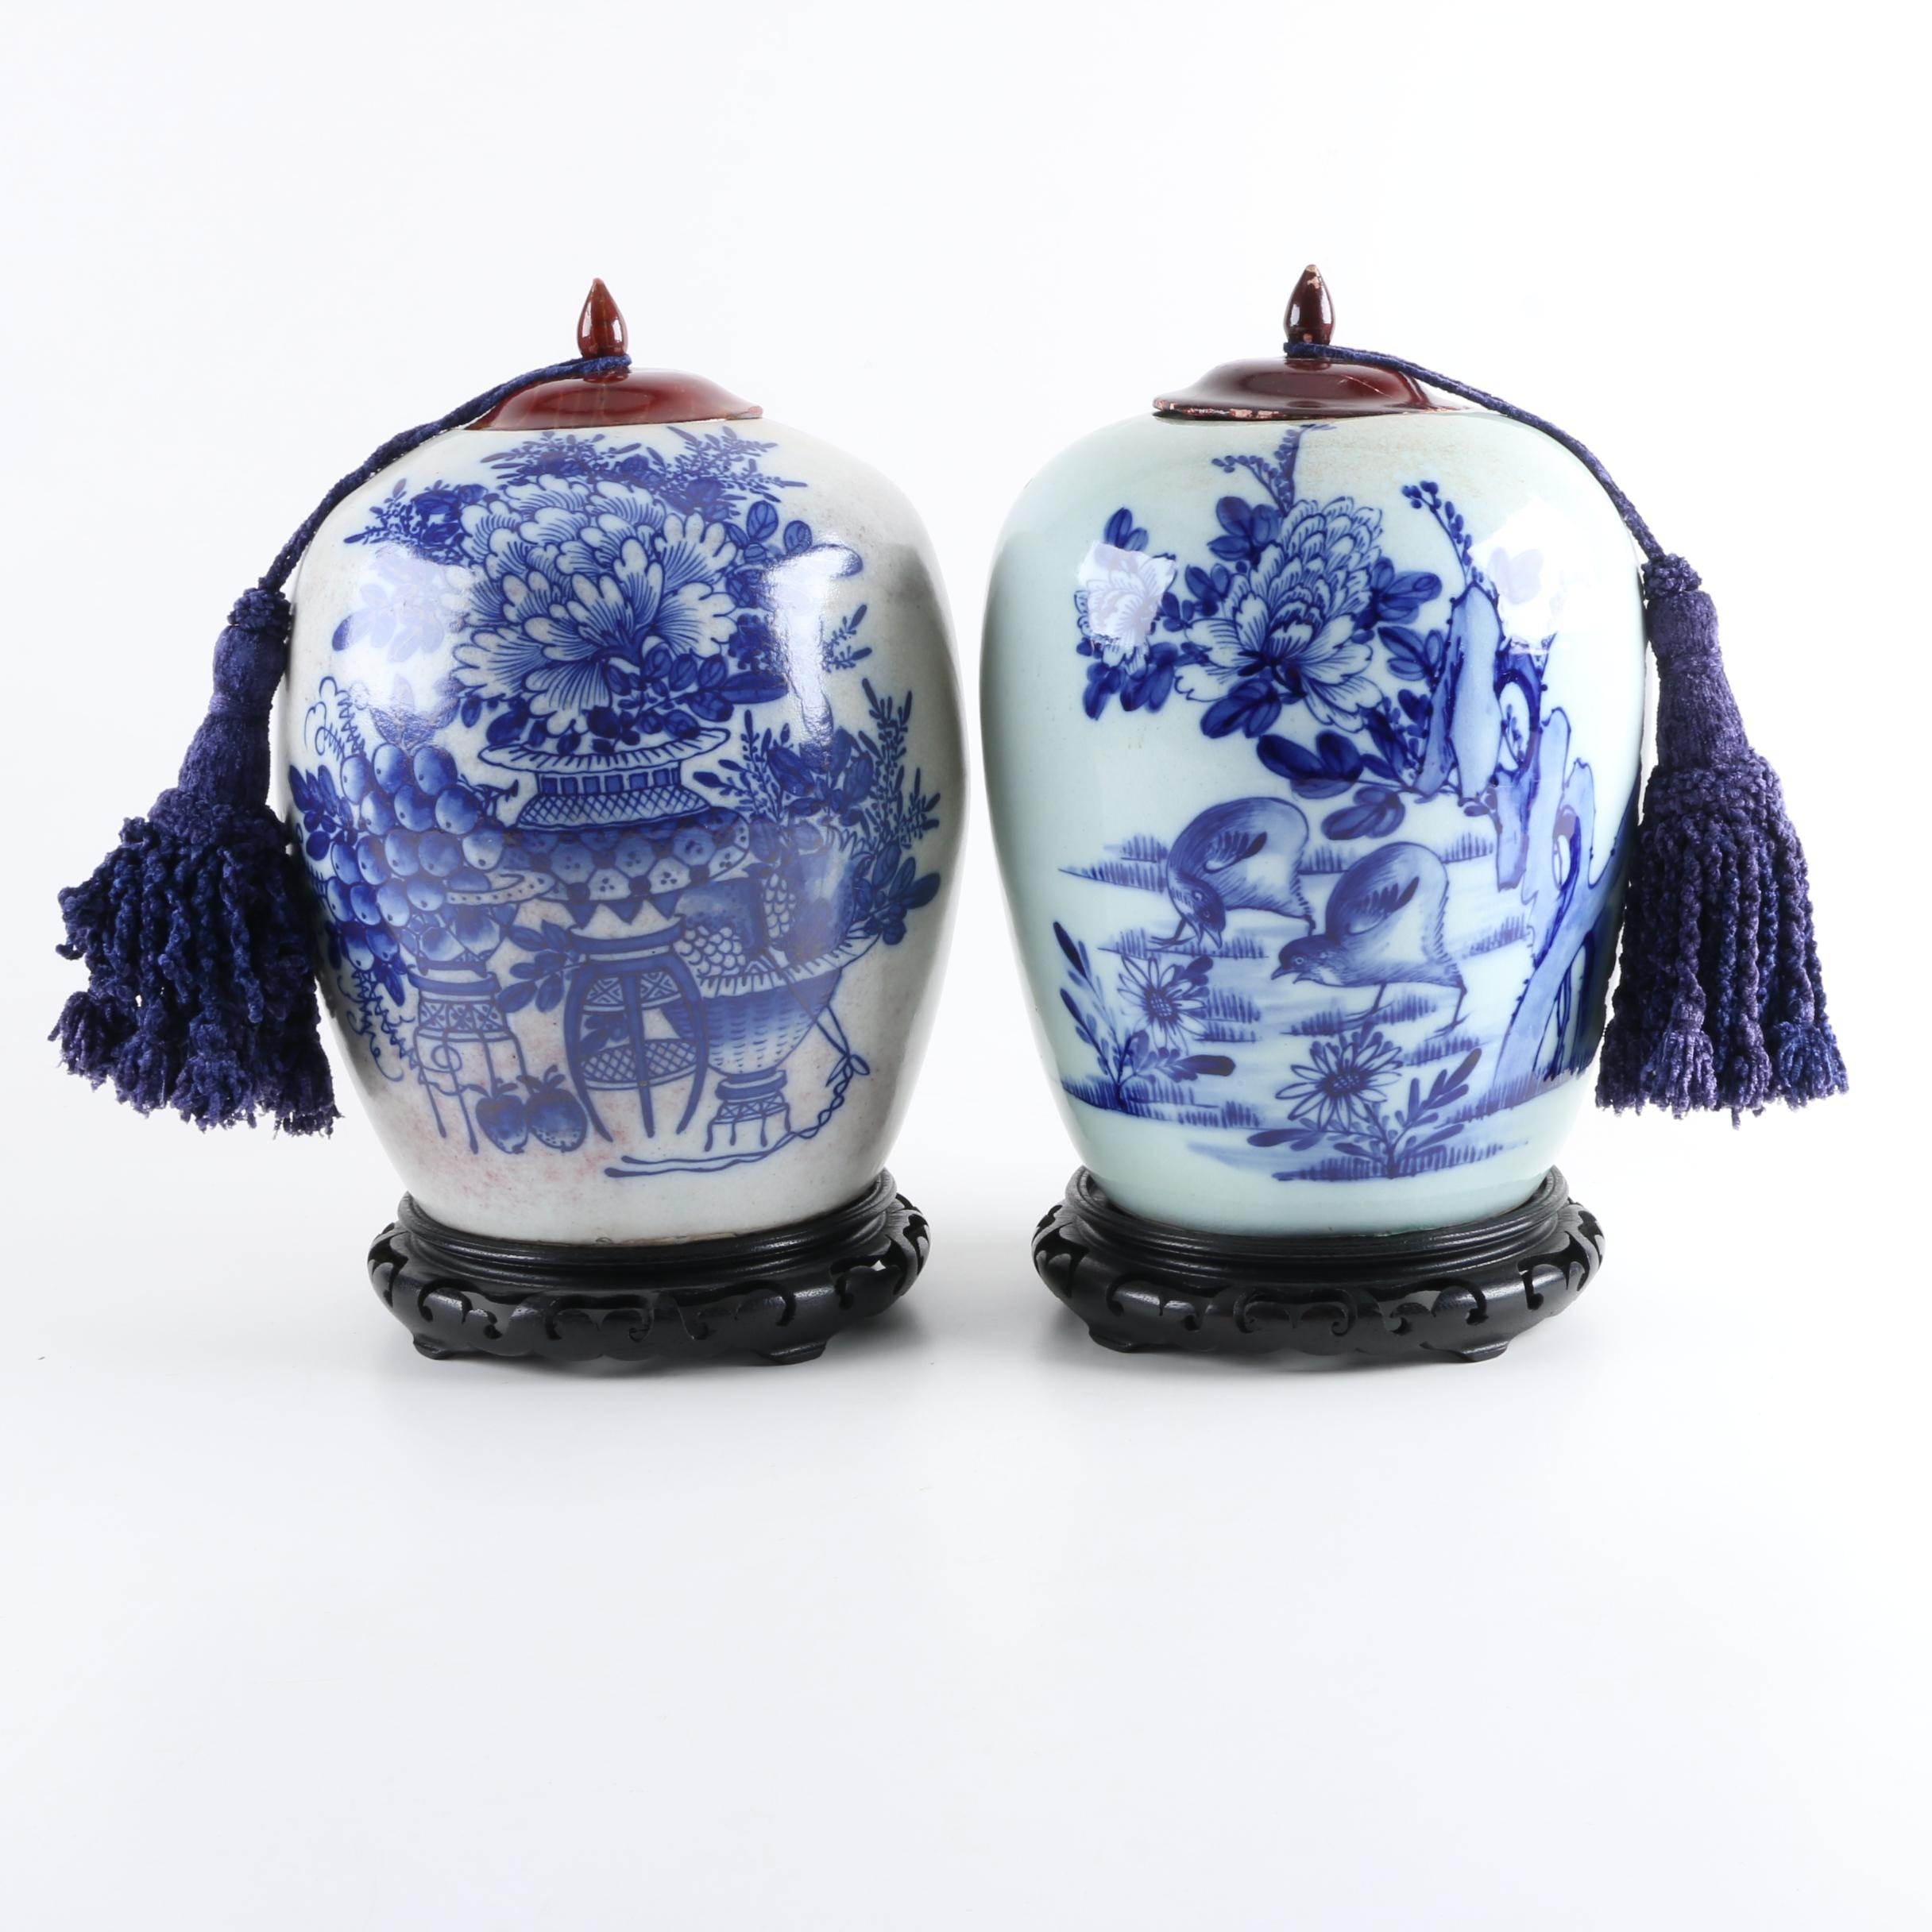 Pair of Chinese Ceramic Jars with Carved Wooden Stands